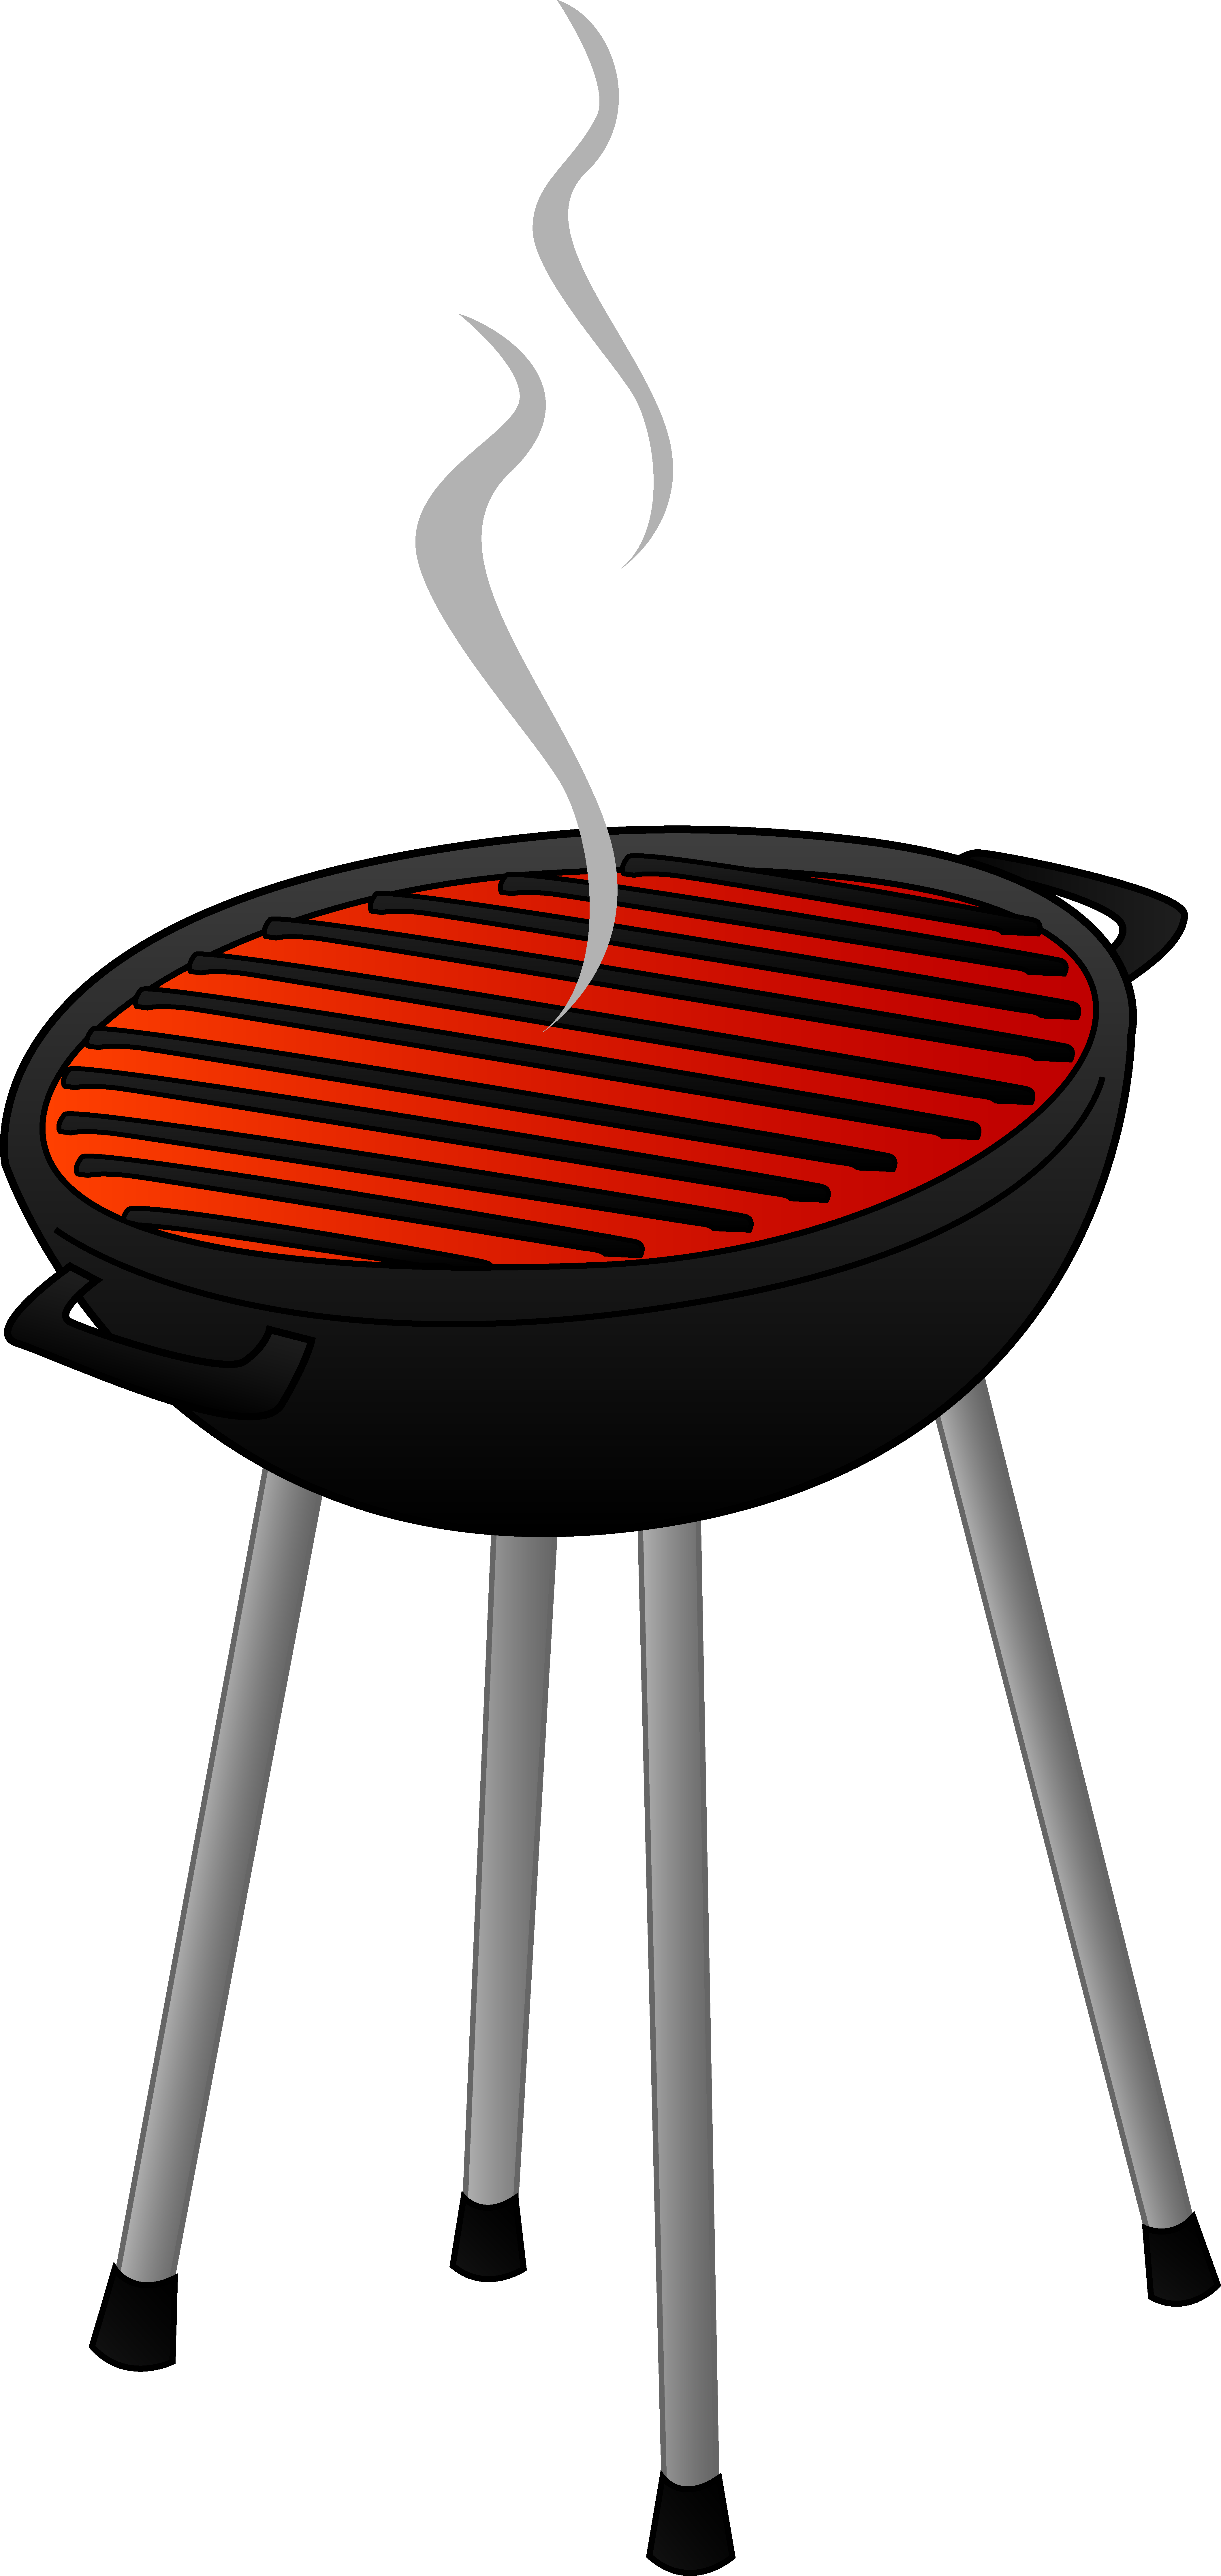 charcoal clipart